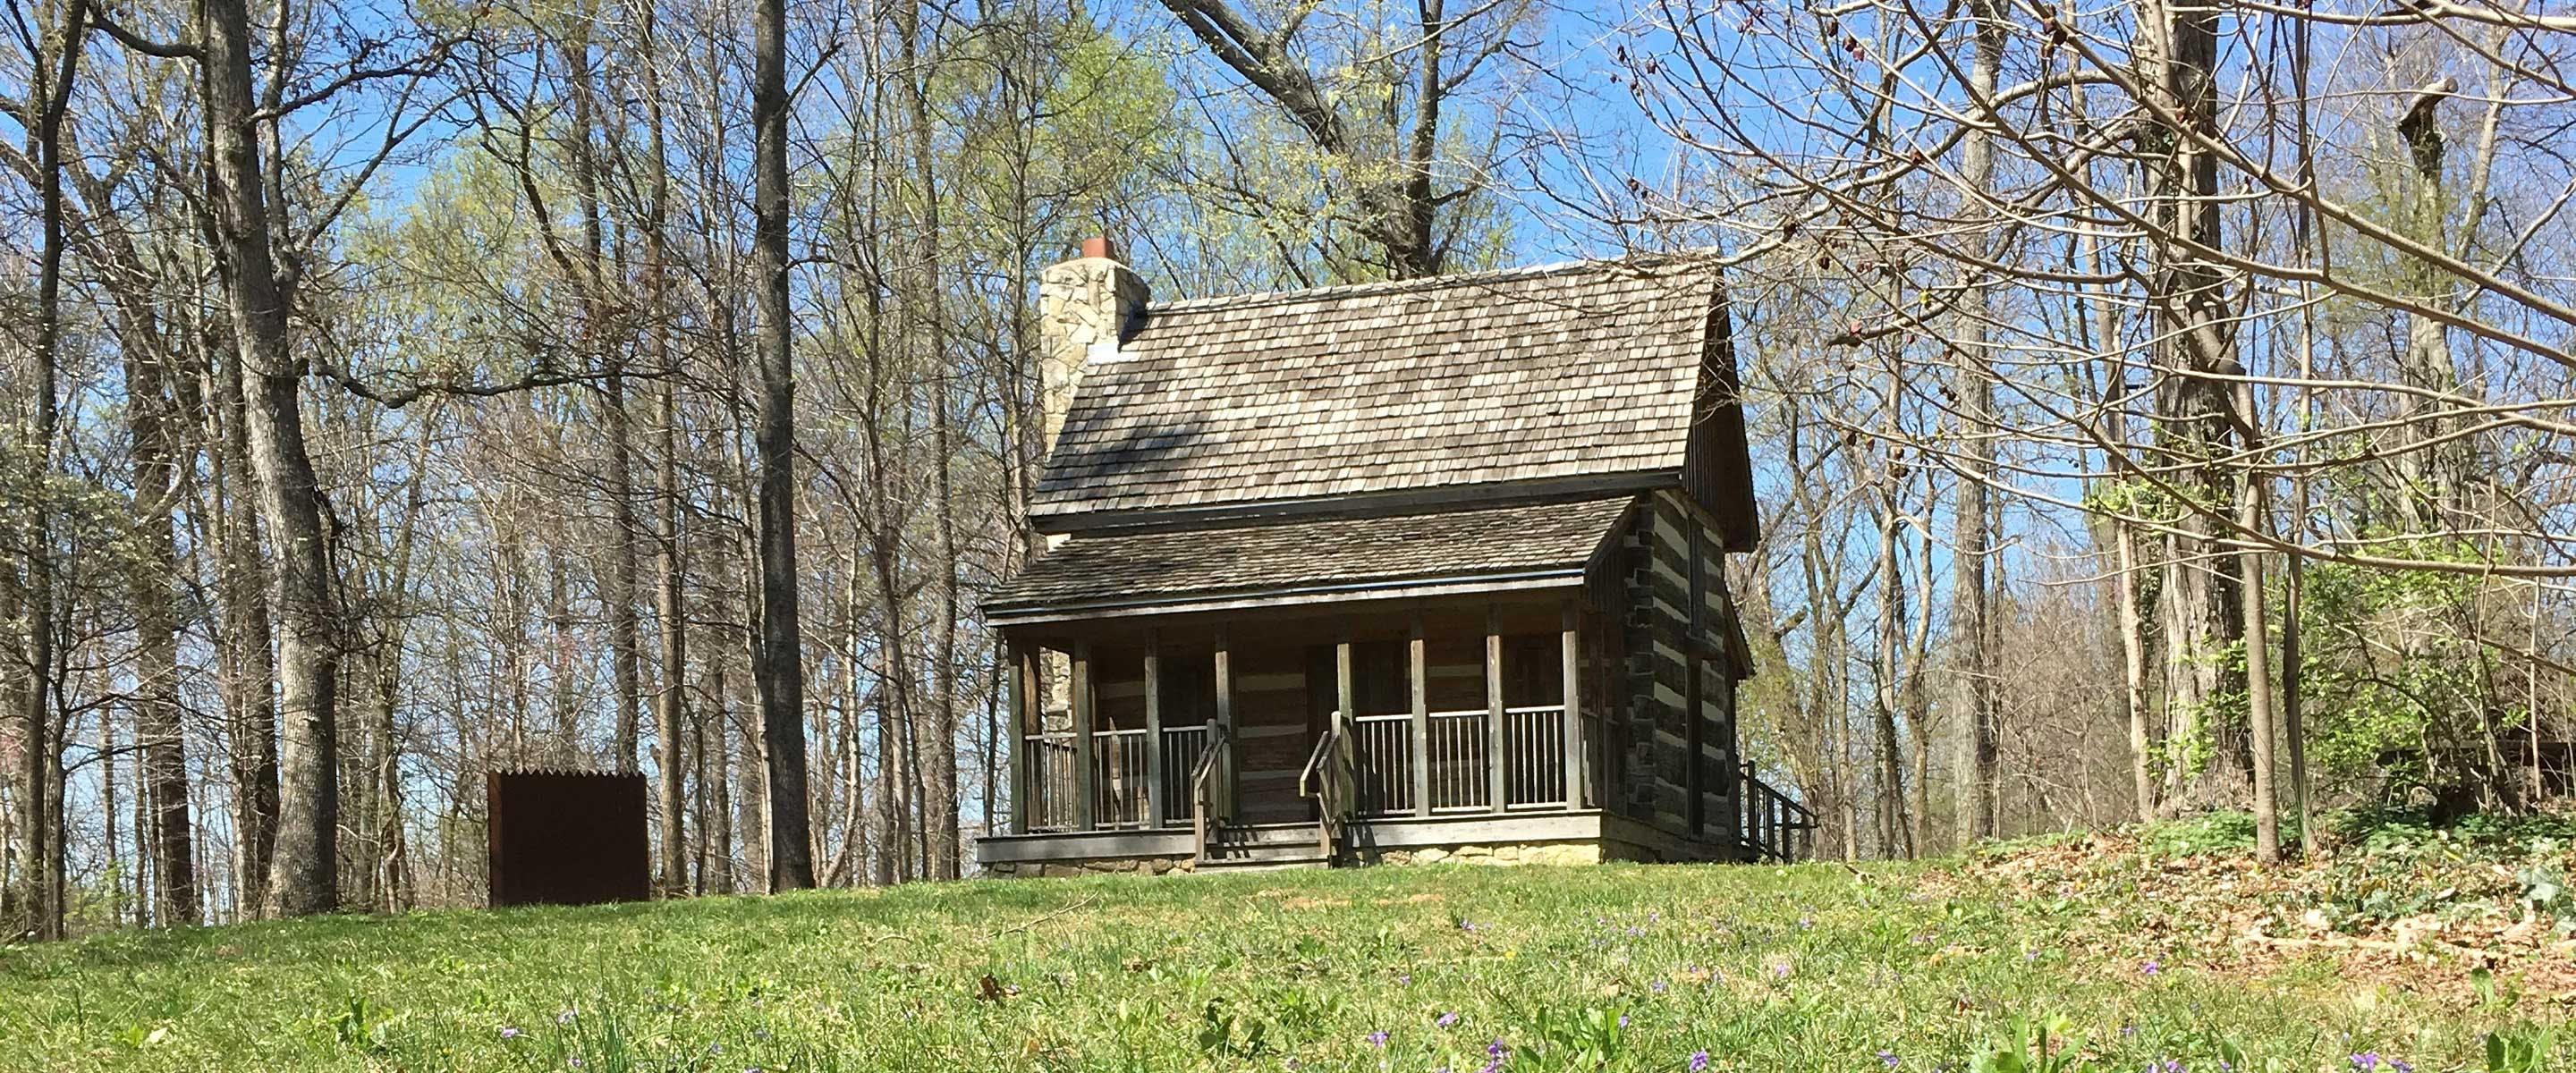 A restored ancient cabins lives to tell an amazing story